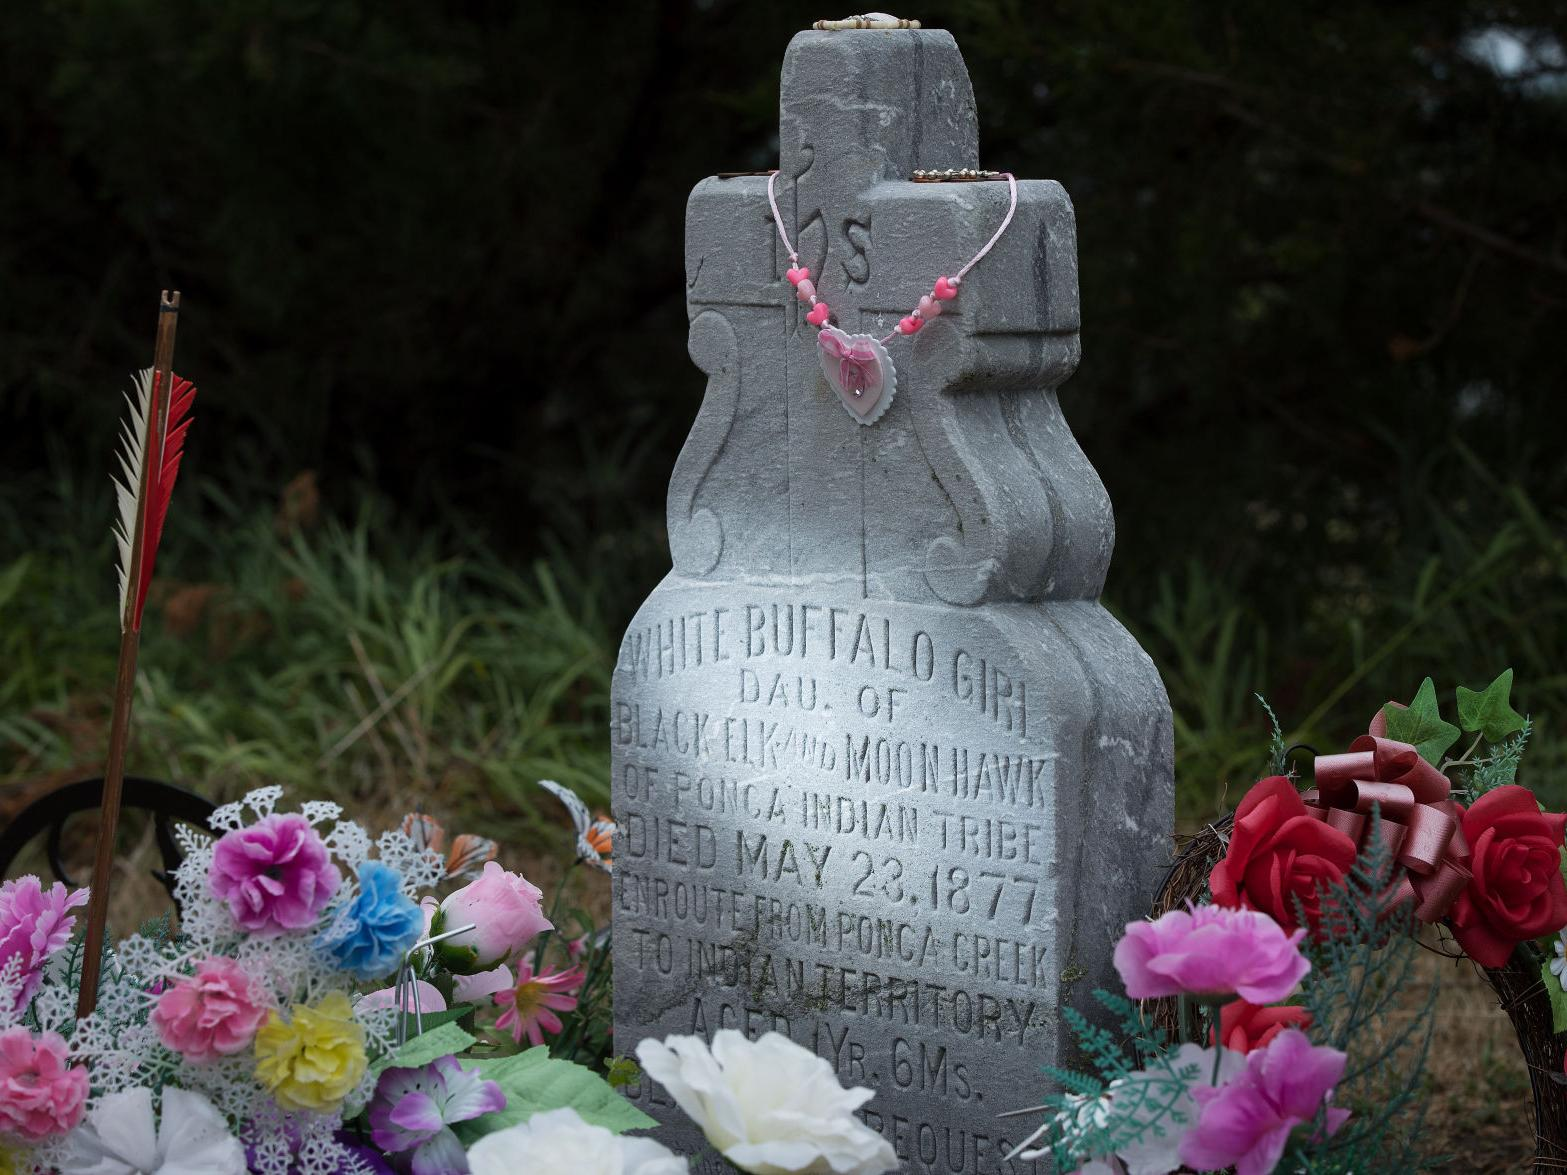 Neligh never forgot: 140 years after White Buffalo Girl's death, town still tends to her grave